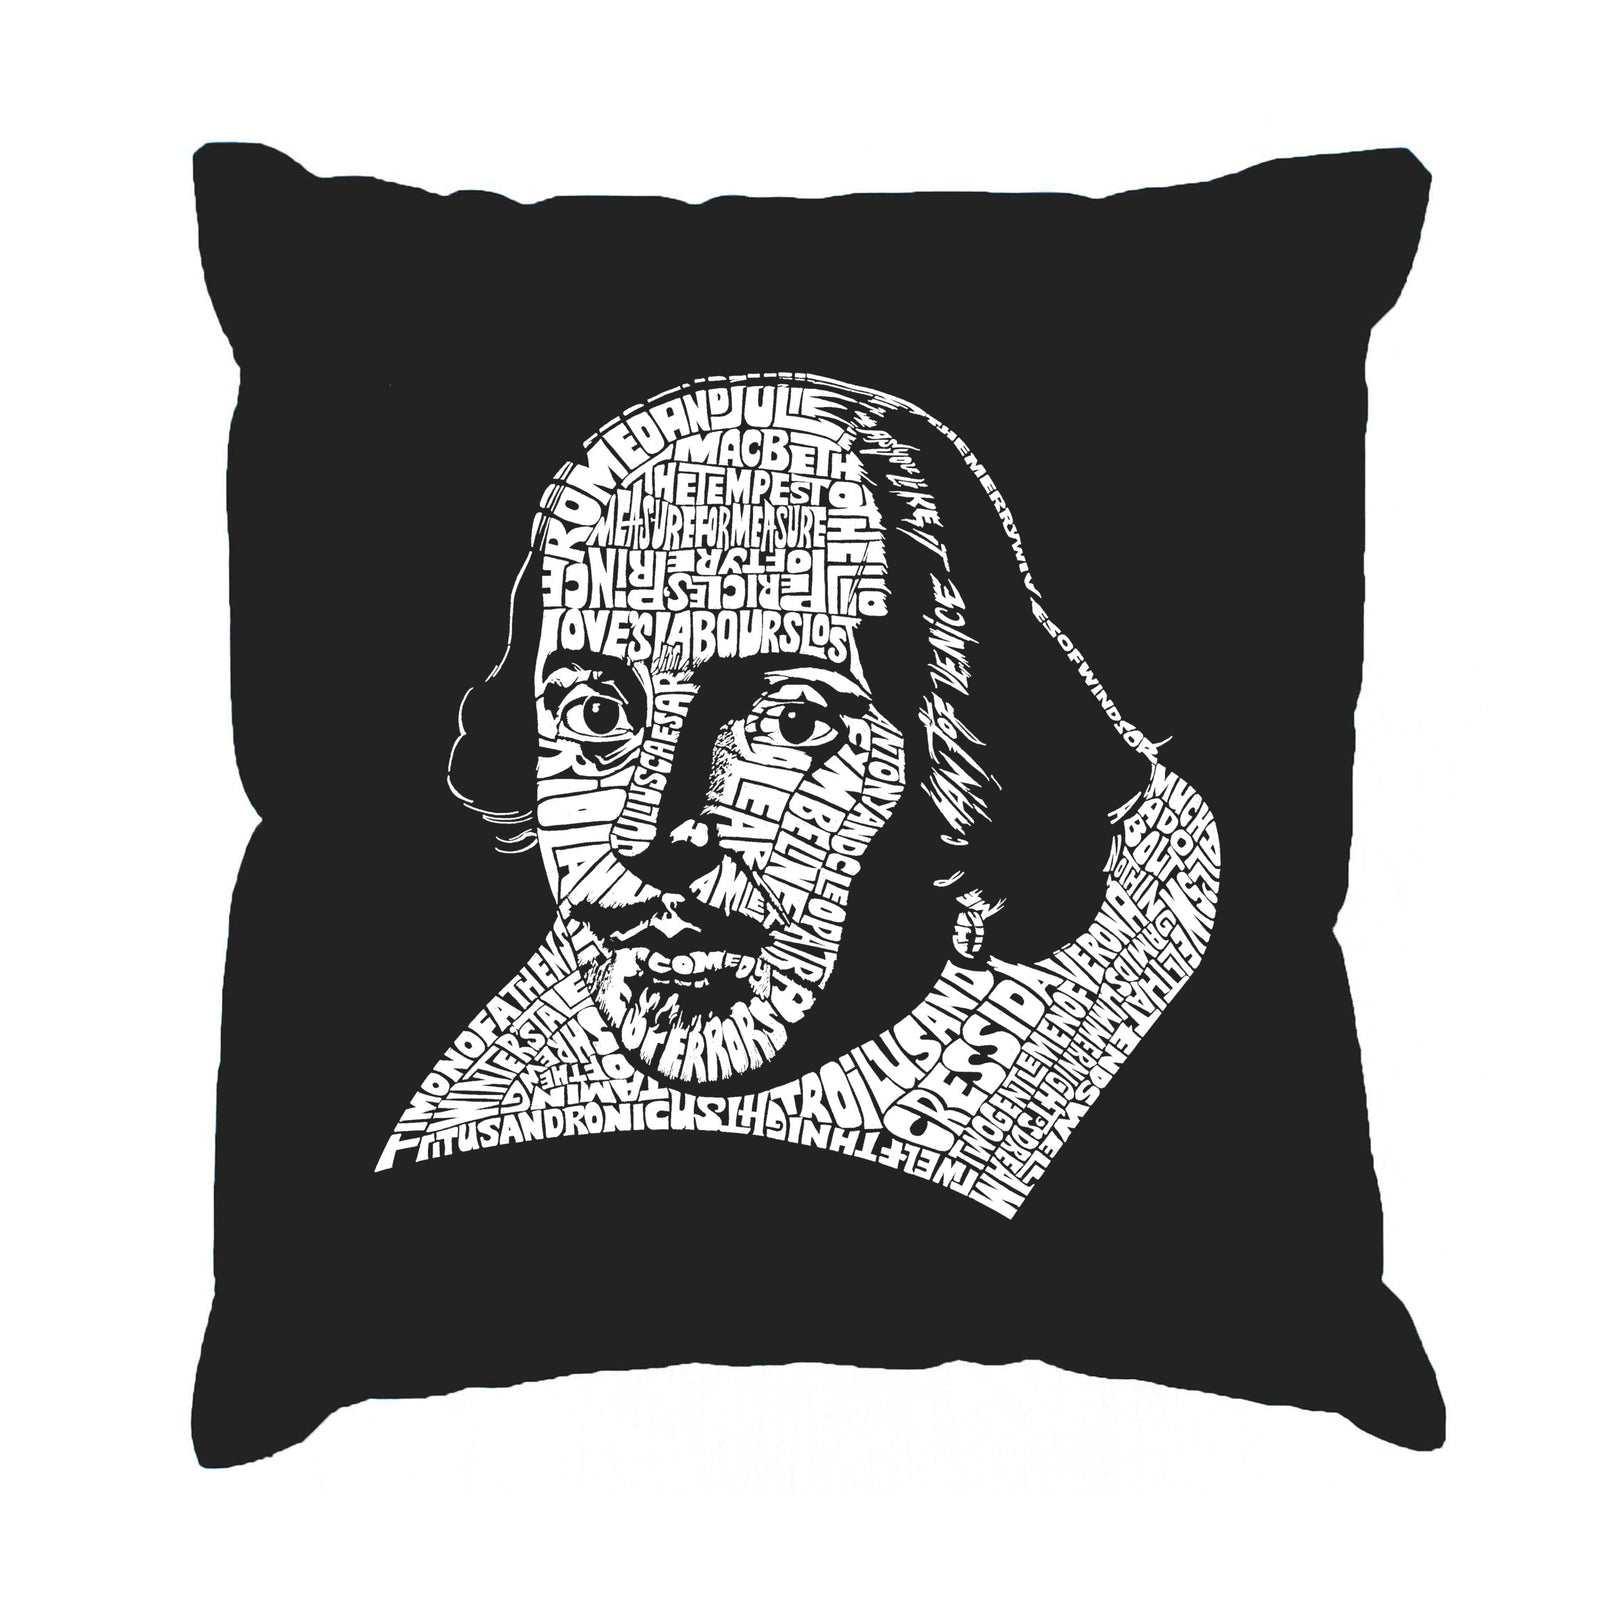 Throw Pillow Cover - THE TITLES OF ALL OF WILLIAM SHAKESPEARE'S COMEDIES & TRAGEDIES